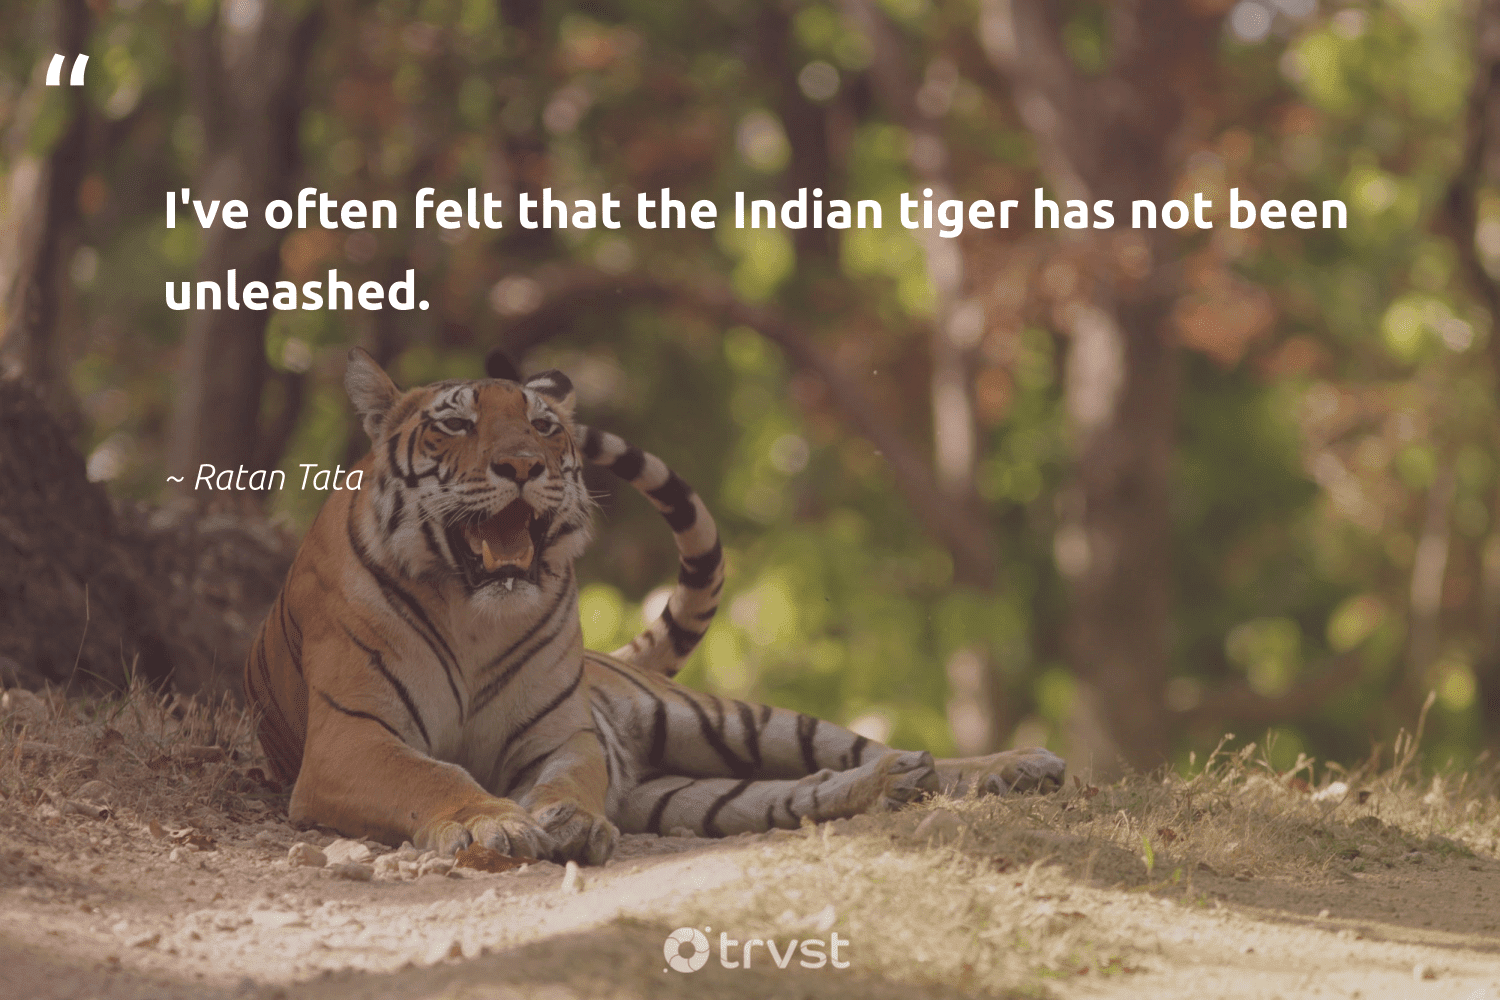 """""""I've often felt that the Indian tiger has not been unleashed.""""  - Ratan Tata #trvst #quotes #tiger #protectnature #ecoconscious #conservation #changetheworld #ourplanetdaily #beinspired #splendidanimals #socialimpact #biodiversity"""